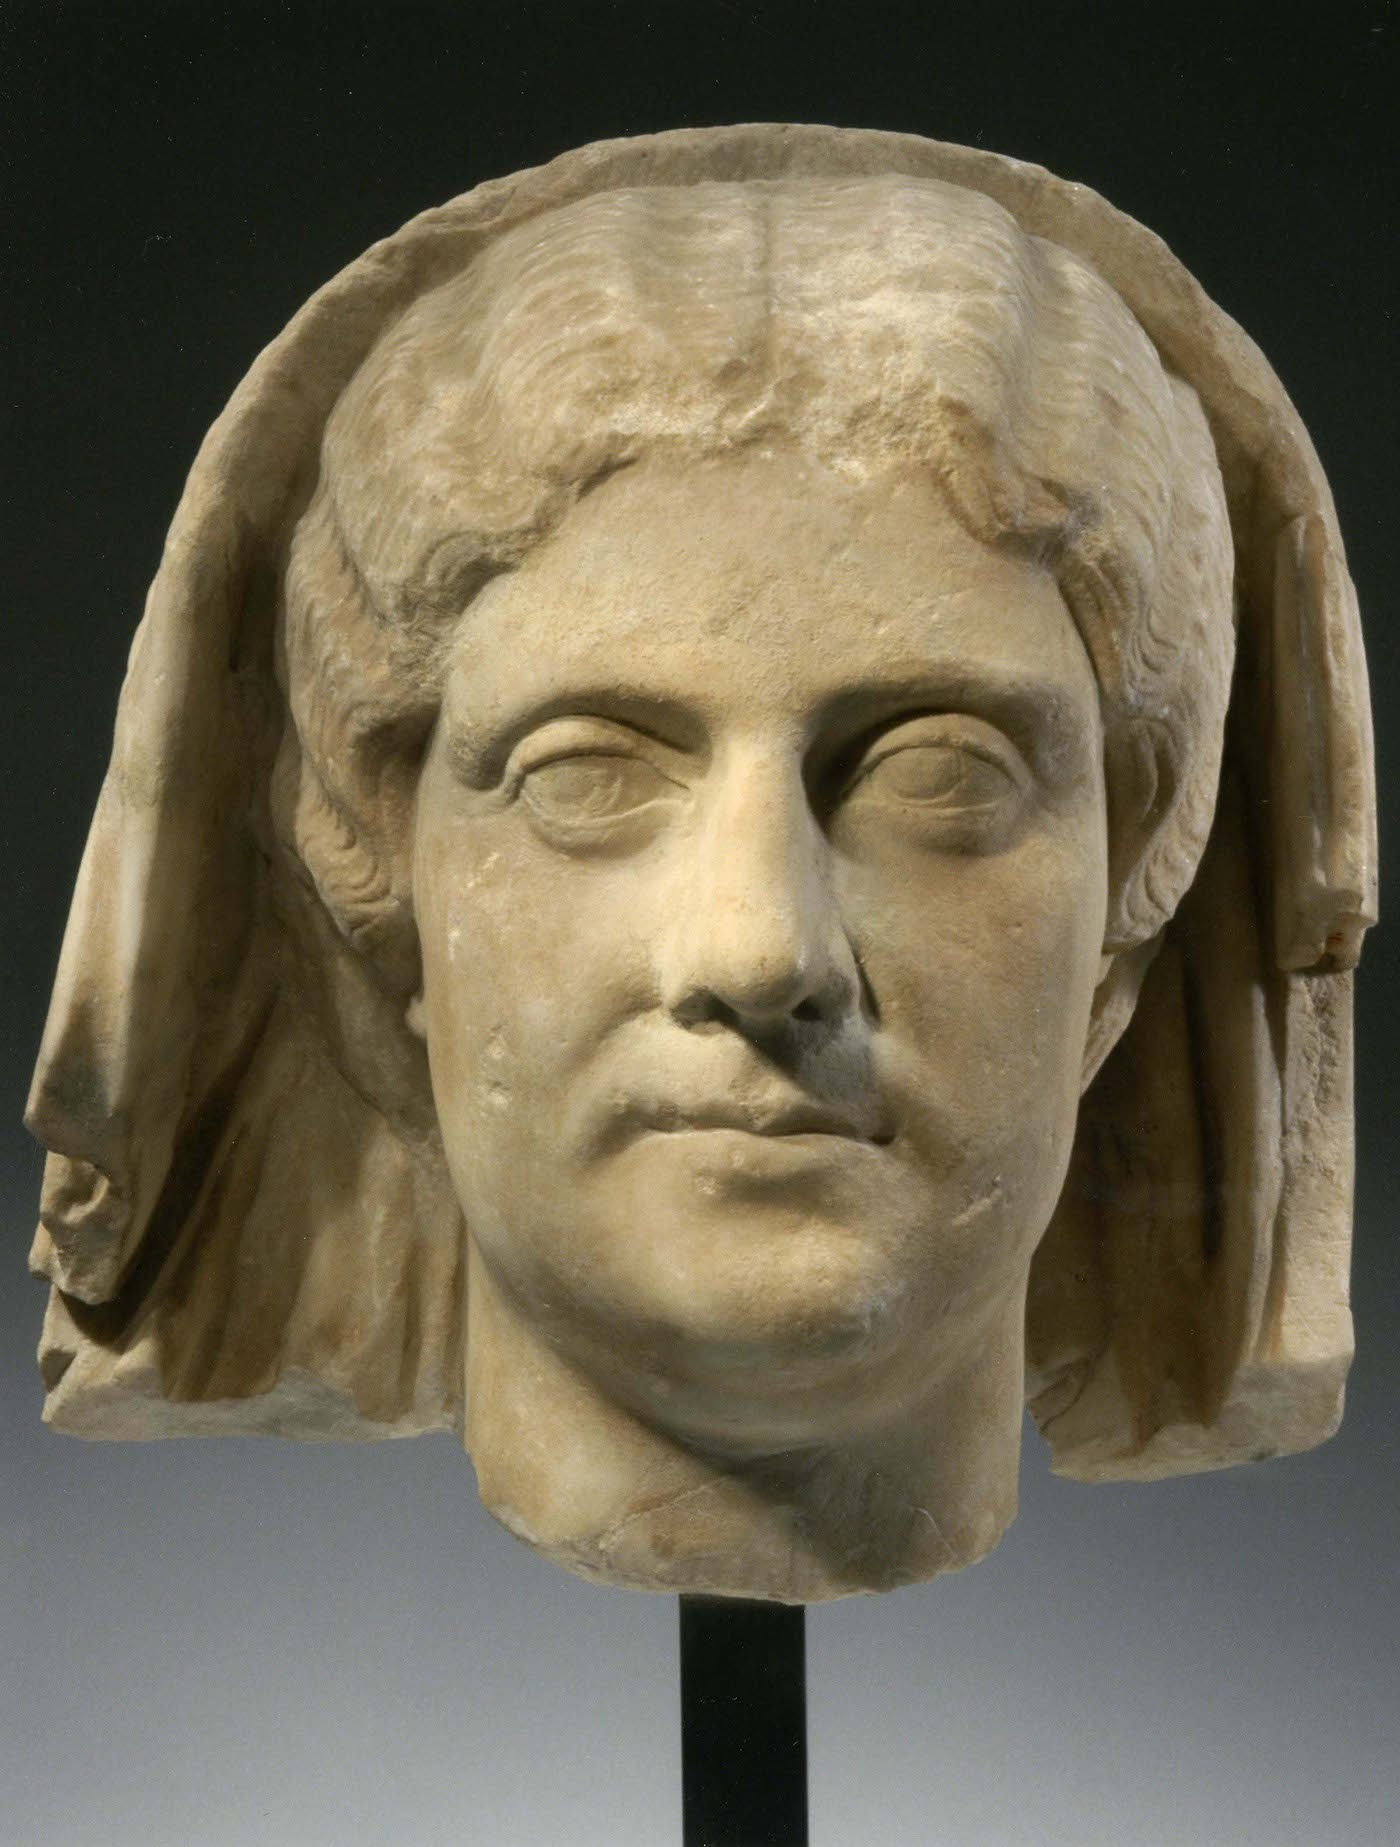 Head of a veiled woman, (CE 175), Roman, marble, 13 inches (courtesy the J. Paul Getty Museum)